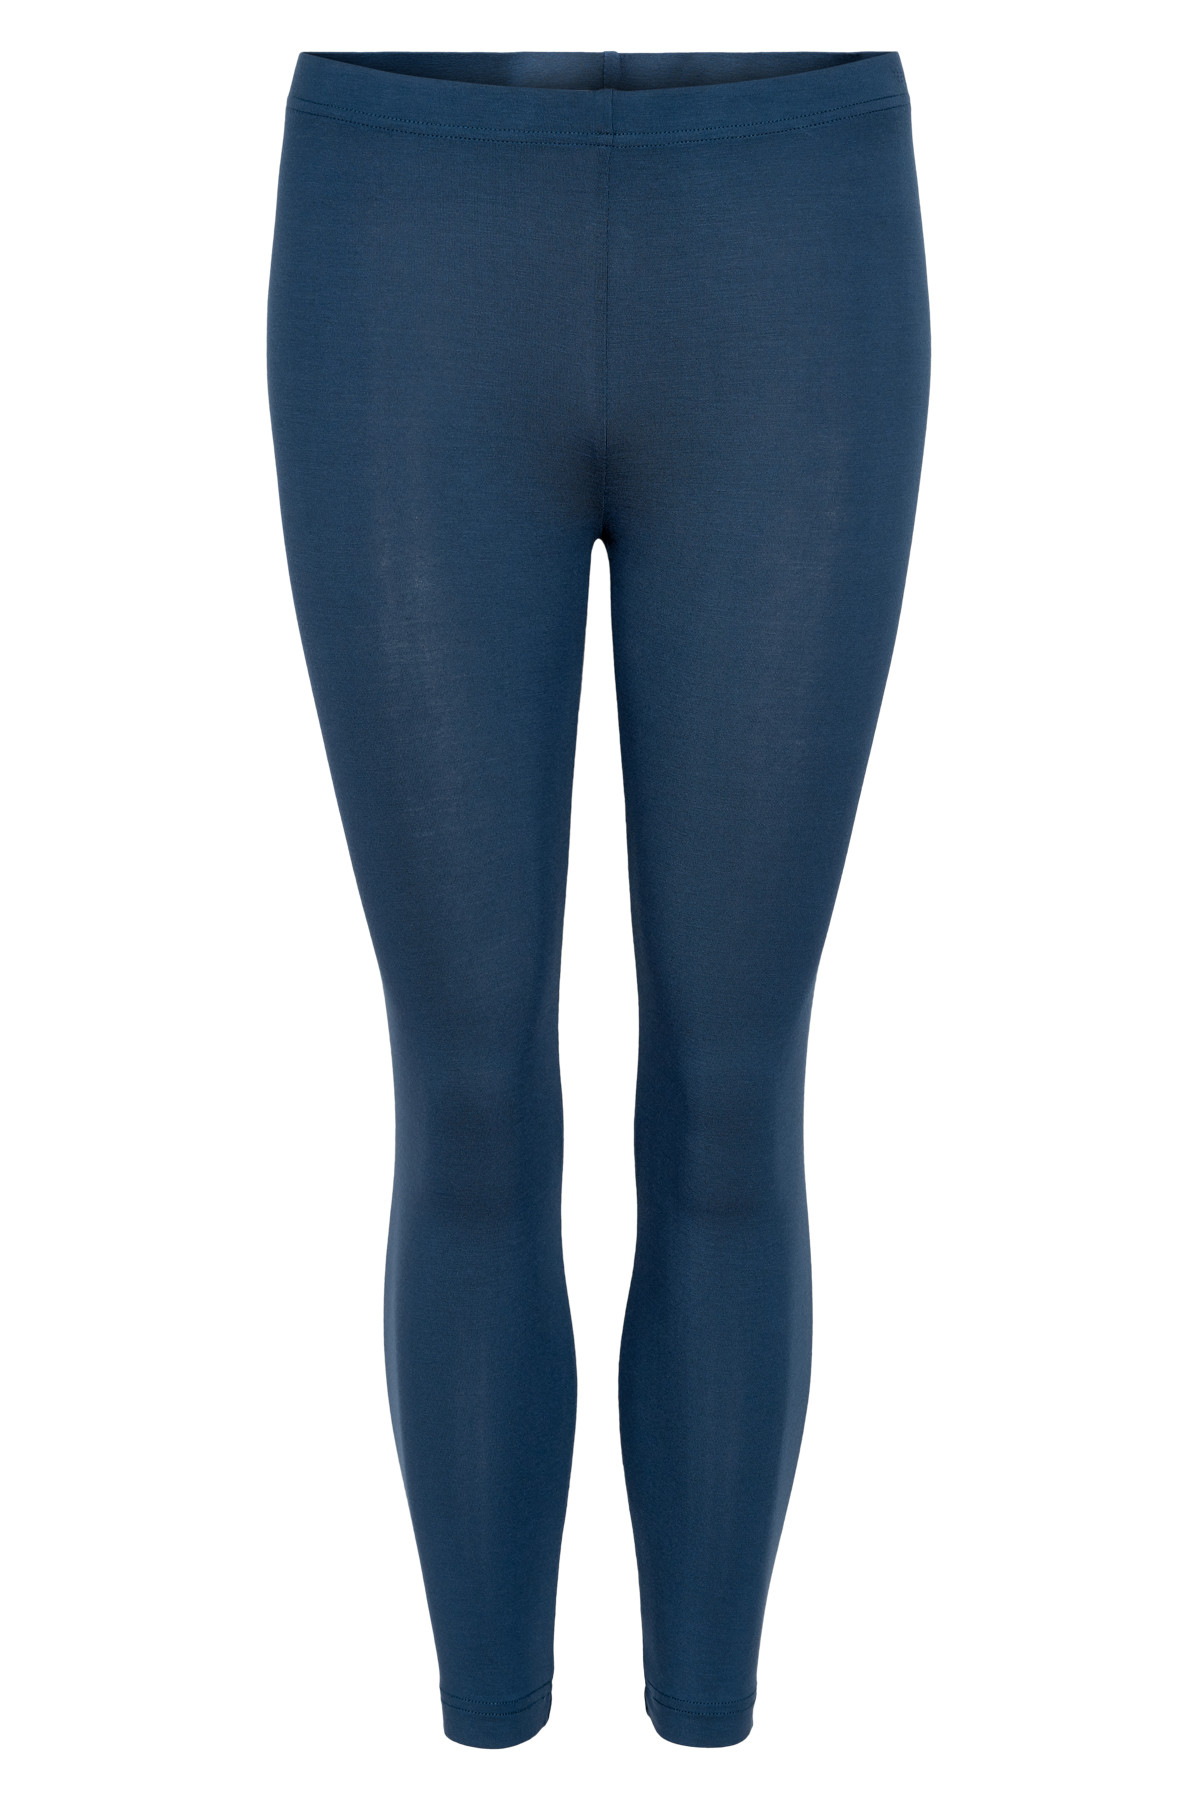 NOA NOA LEGGINGS 1-9383-1 00690 (Blue, S)